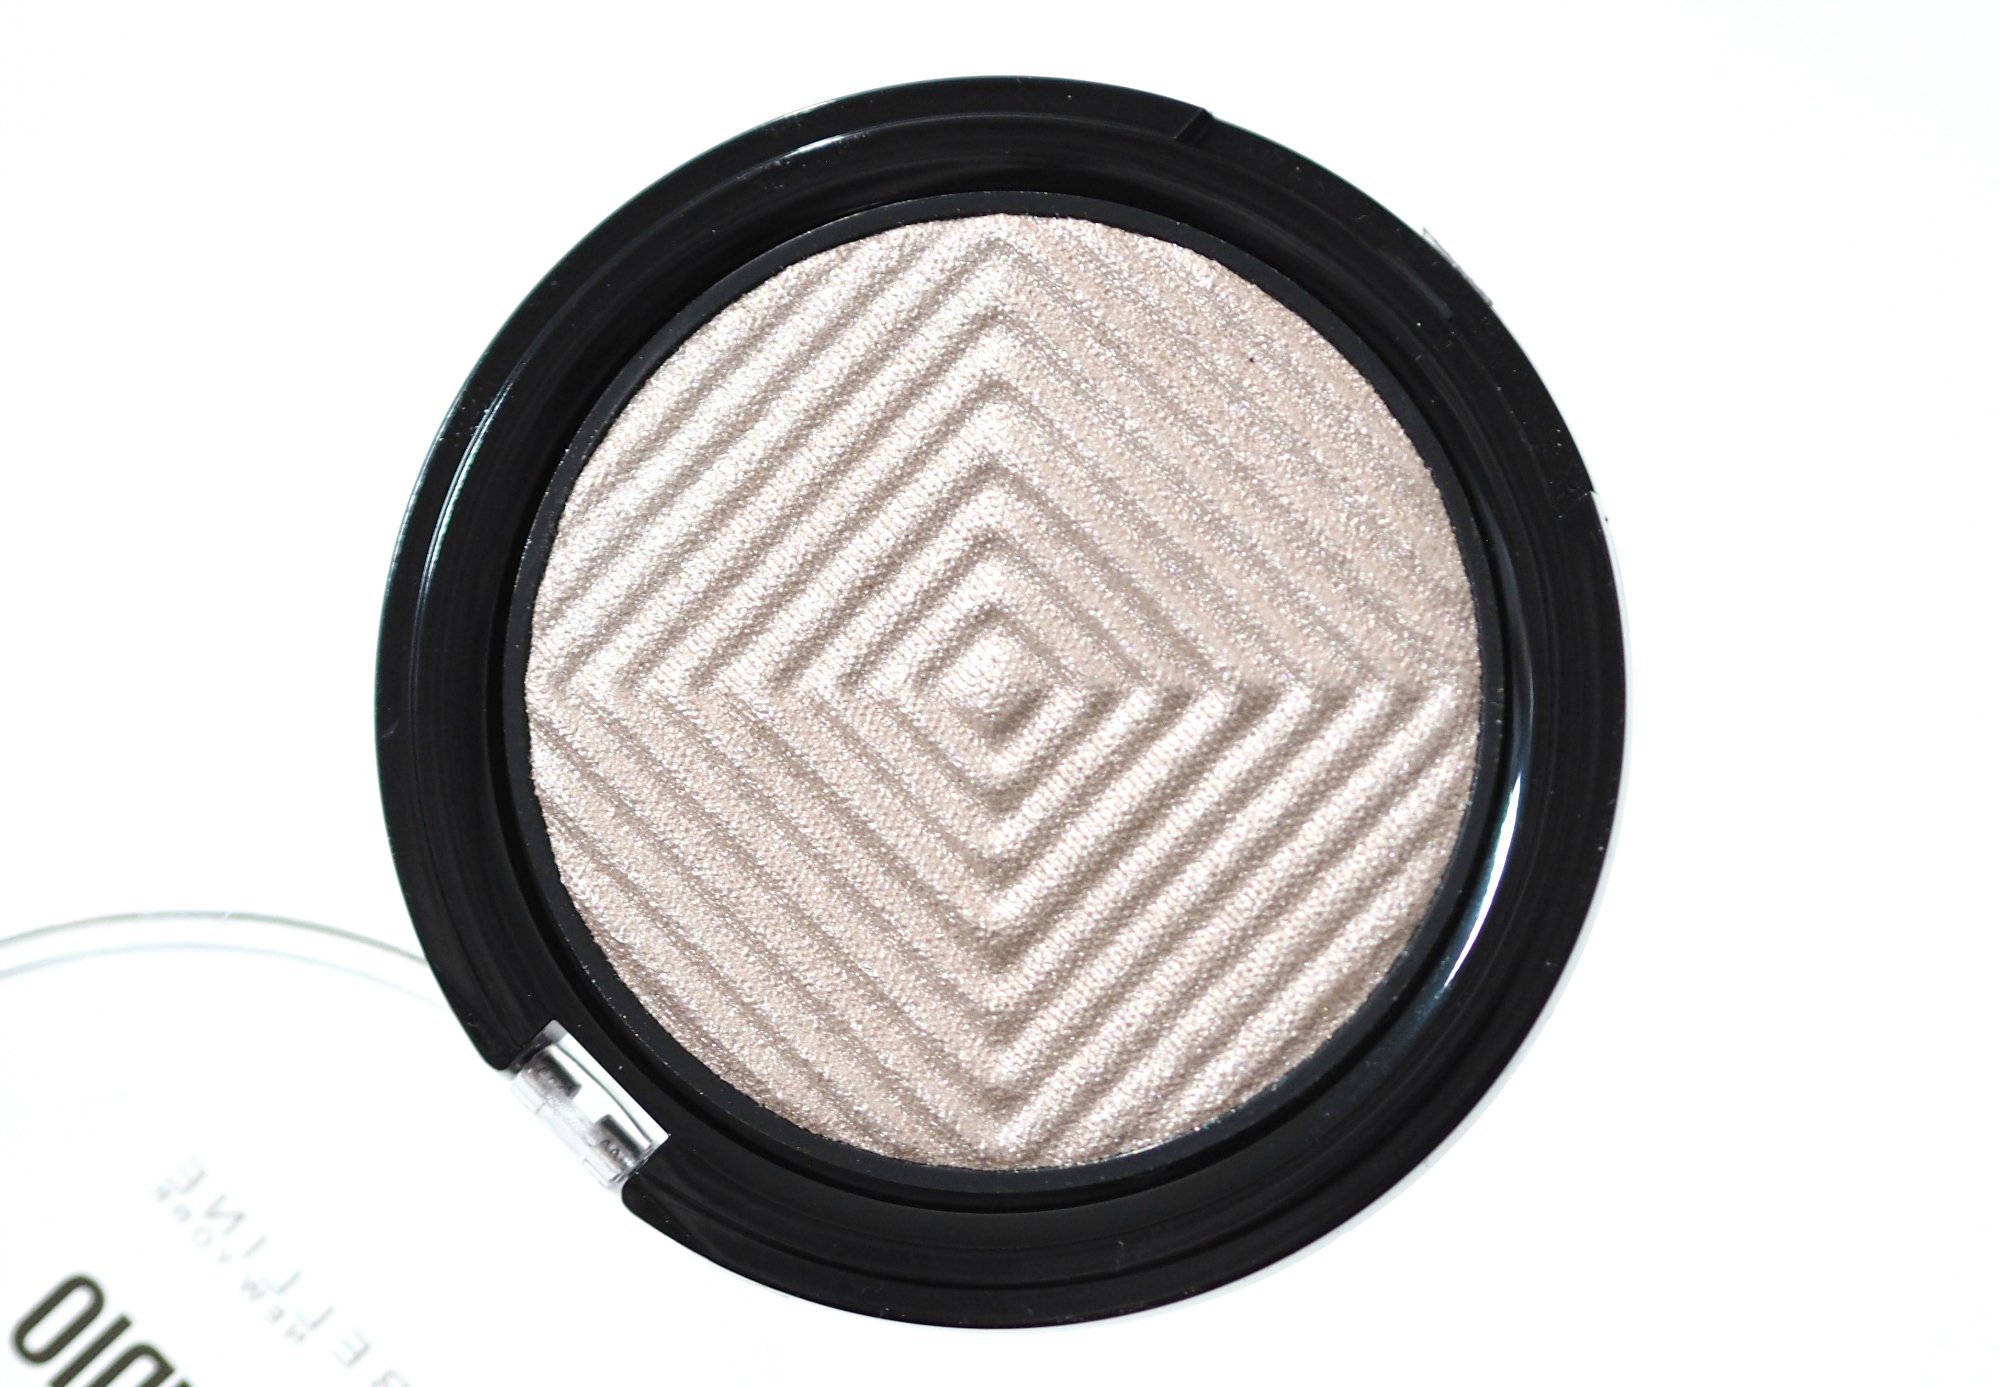 Maybelline Diamond Glow Chrome Extreme Highlighter Review and Swatches